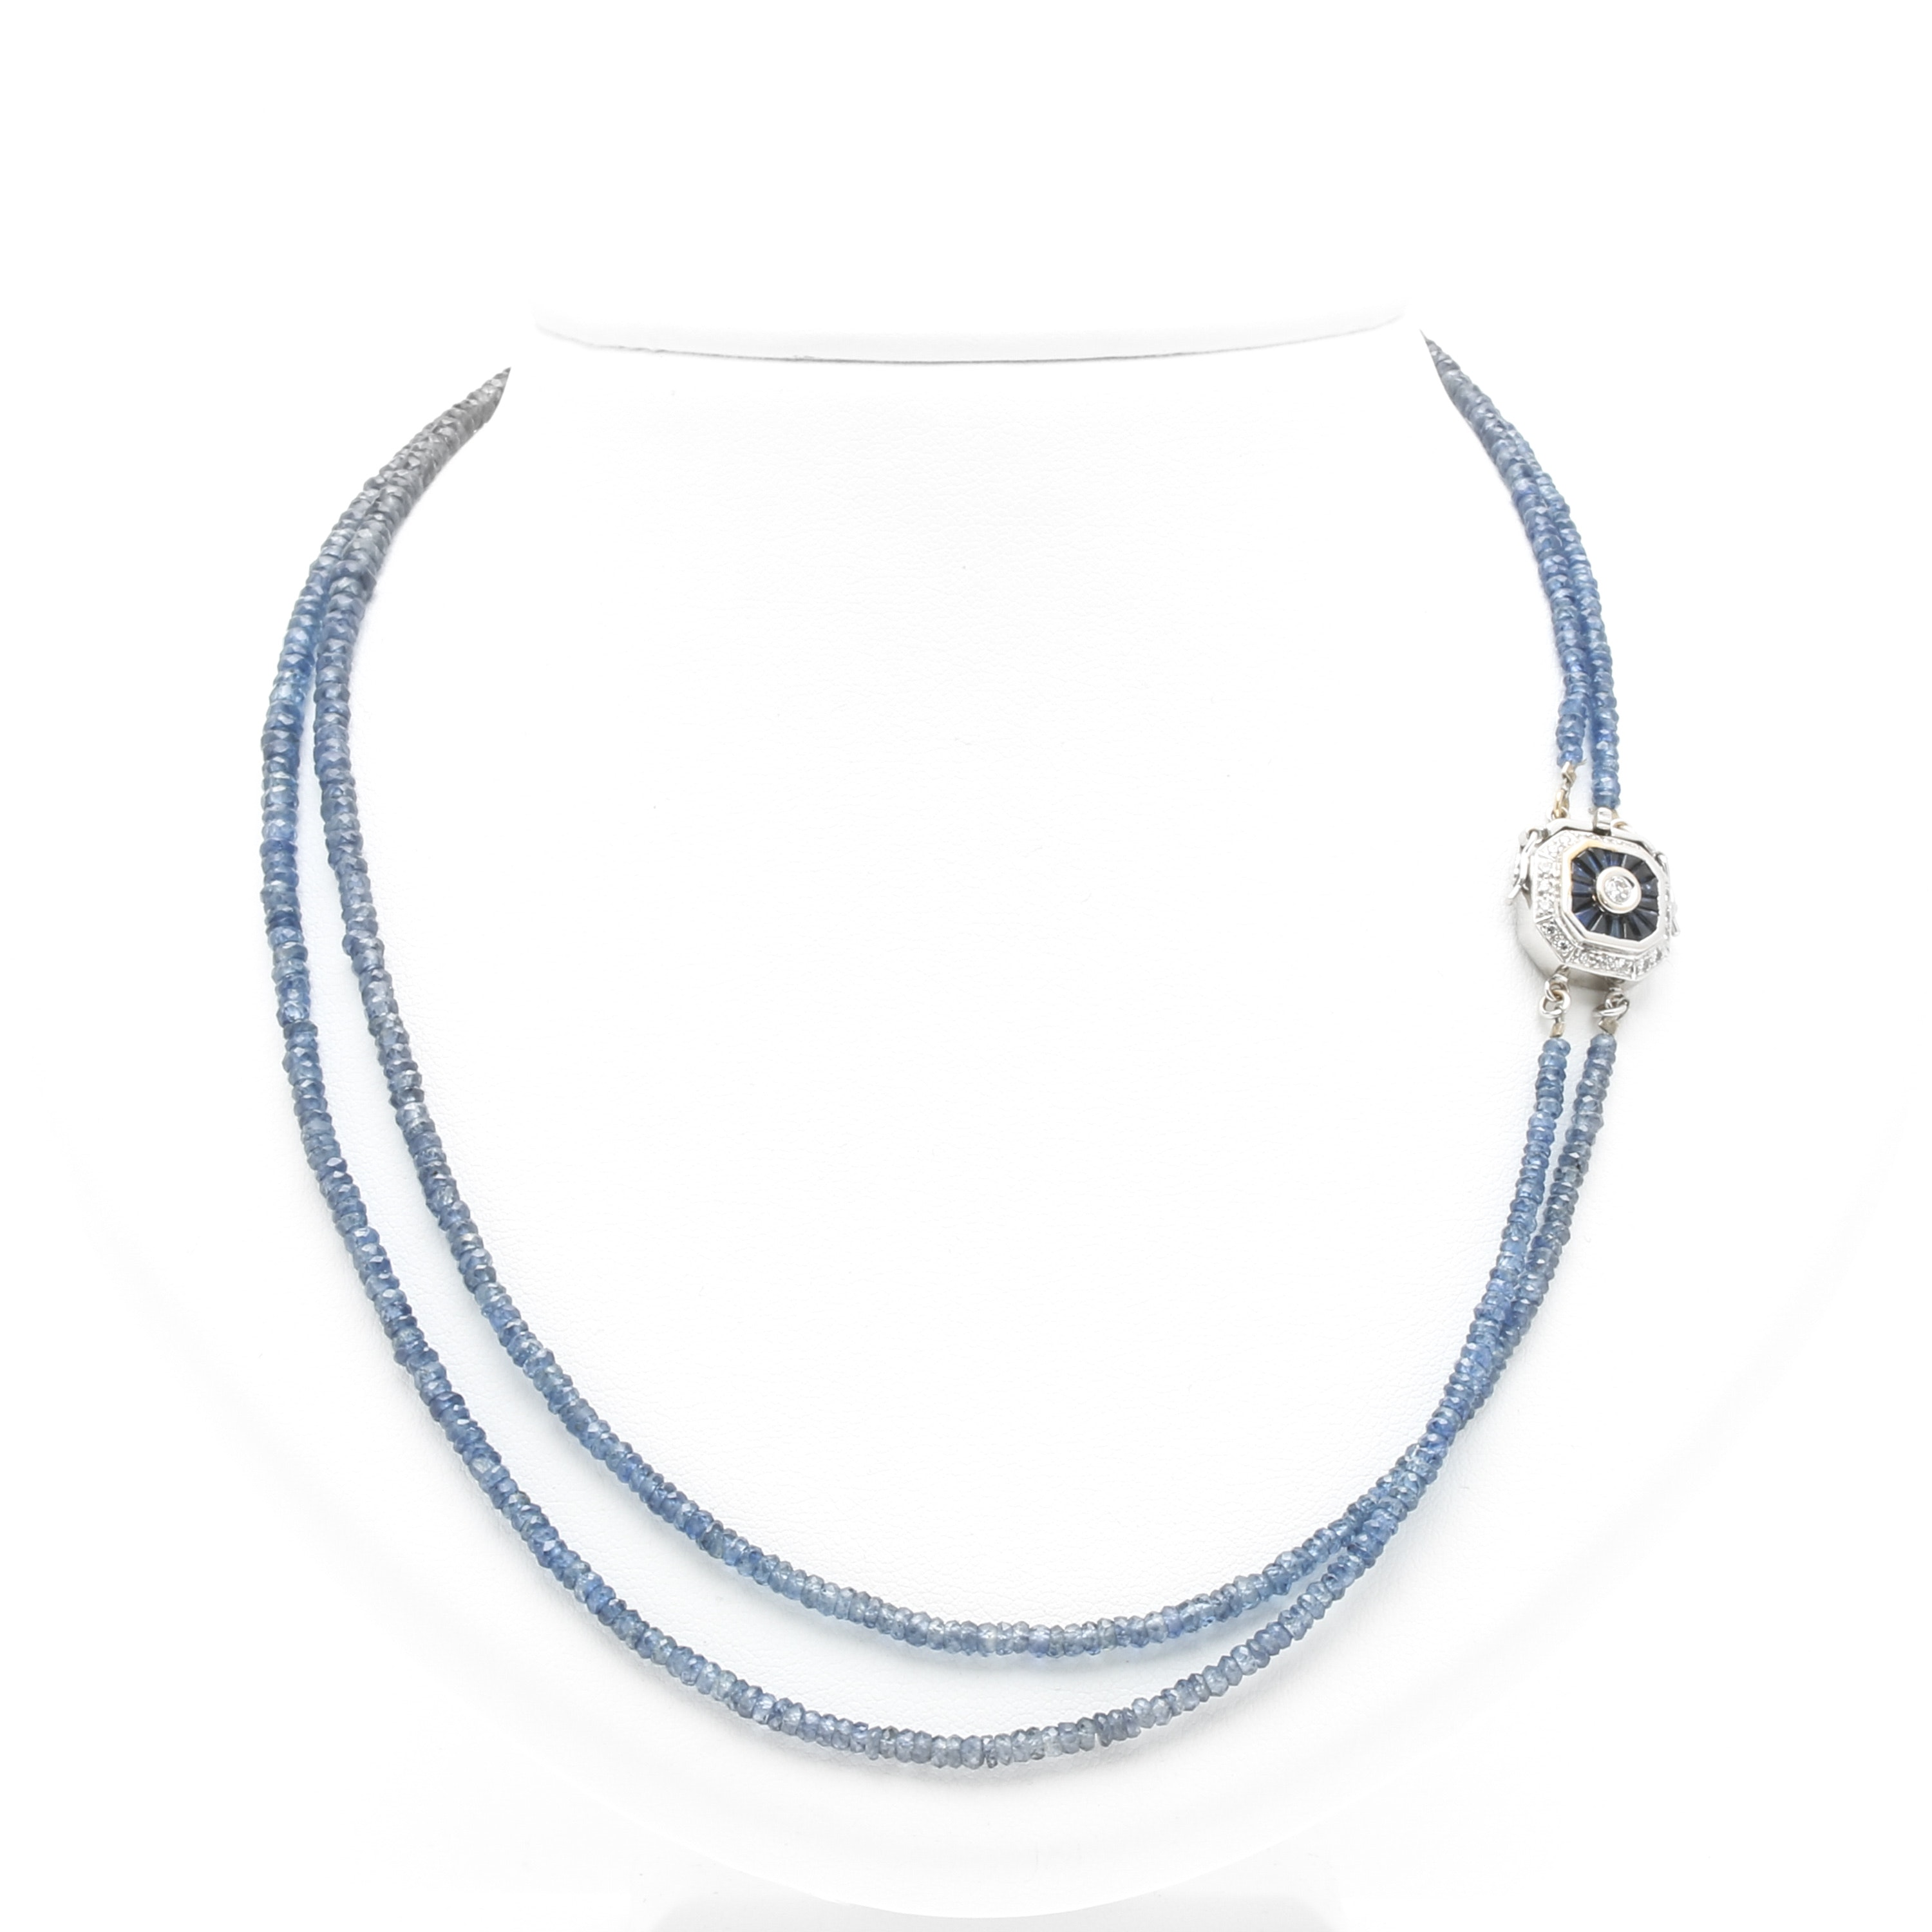 14K White Gold Diamond and Sapphire Dual Strand Necklace